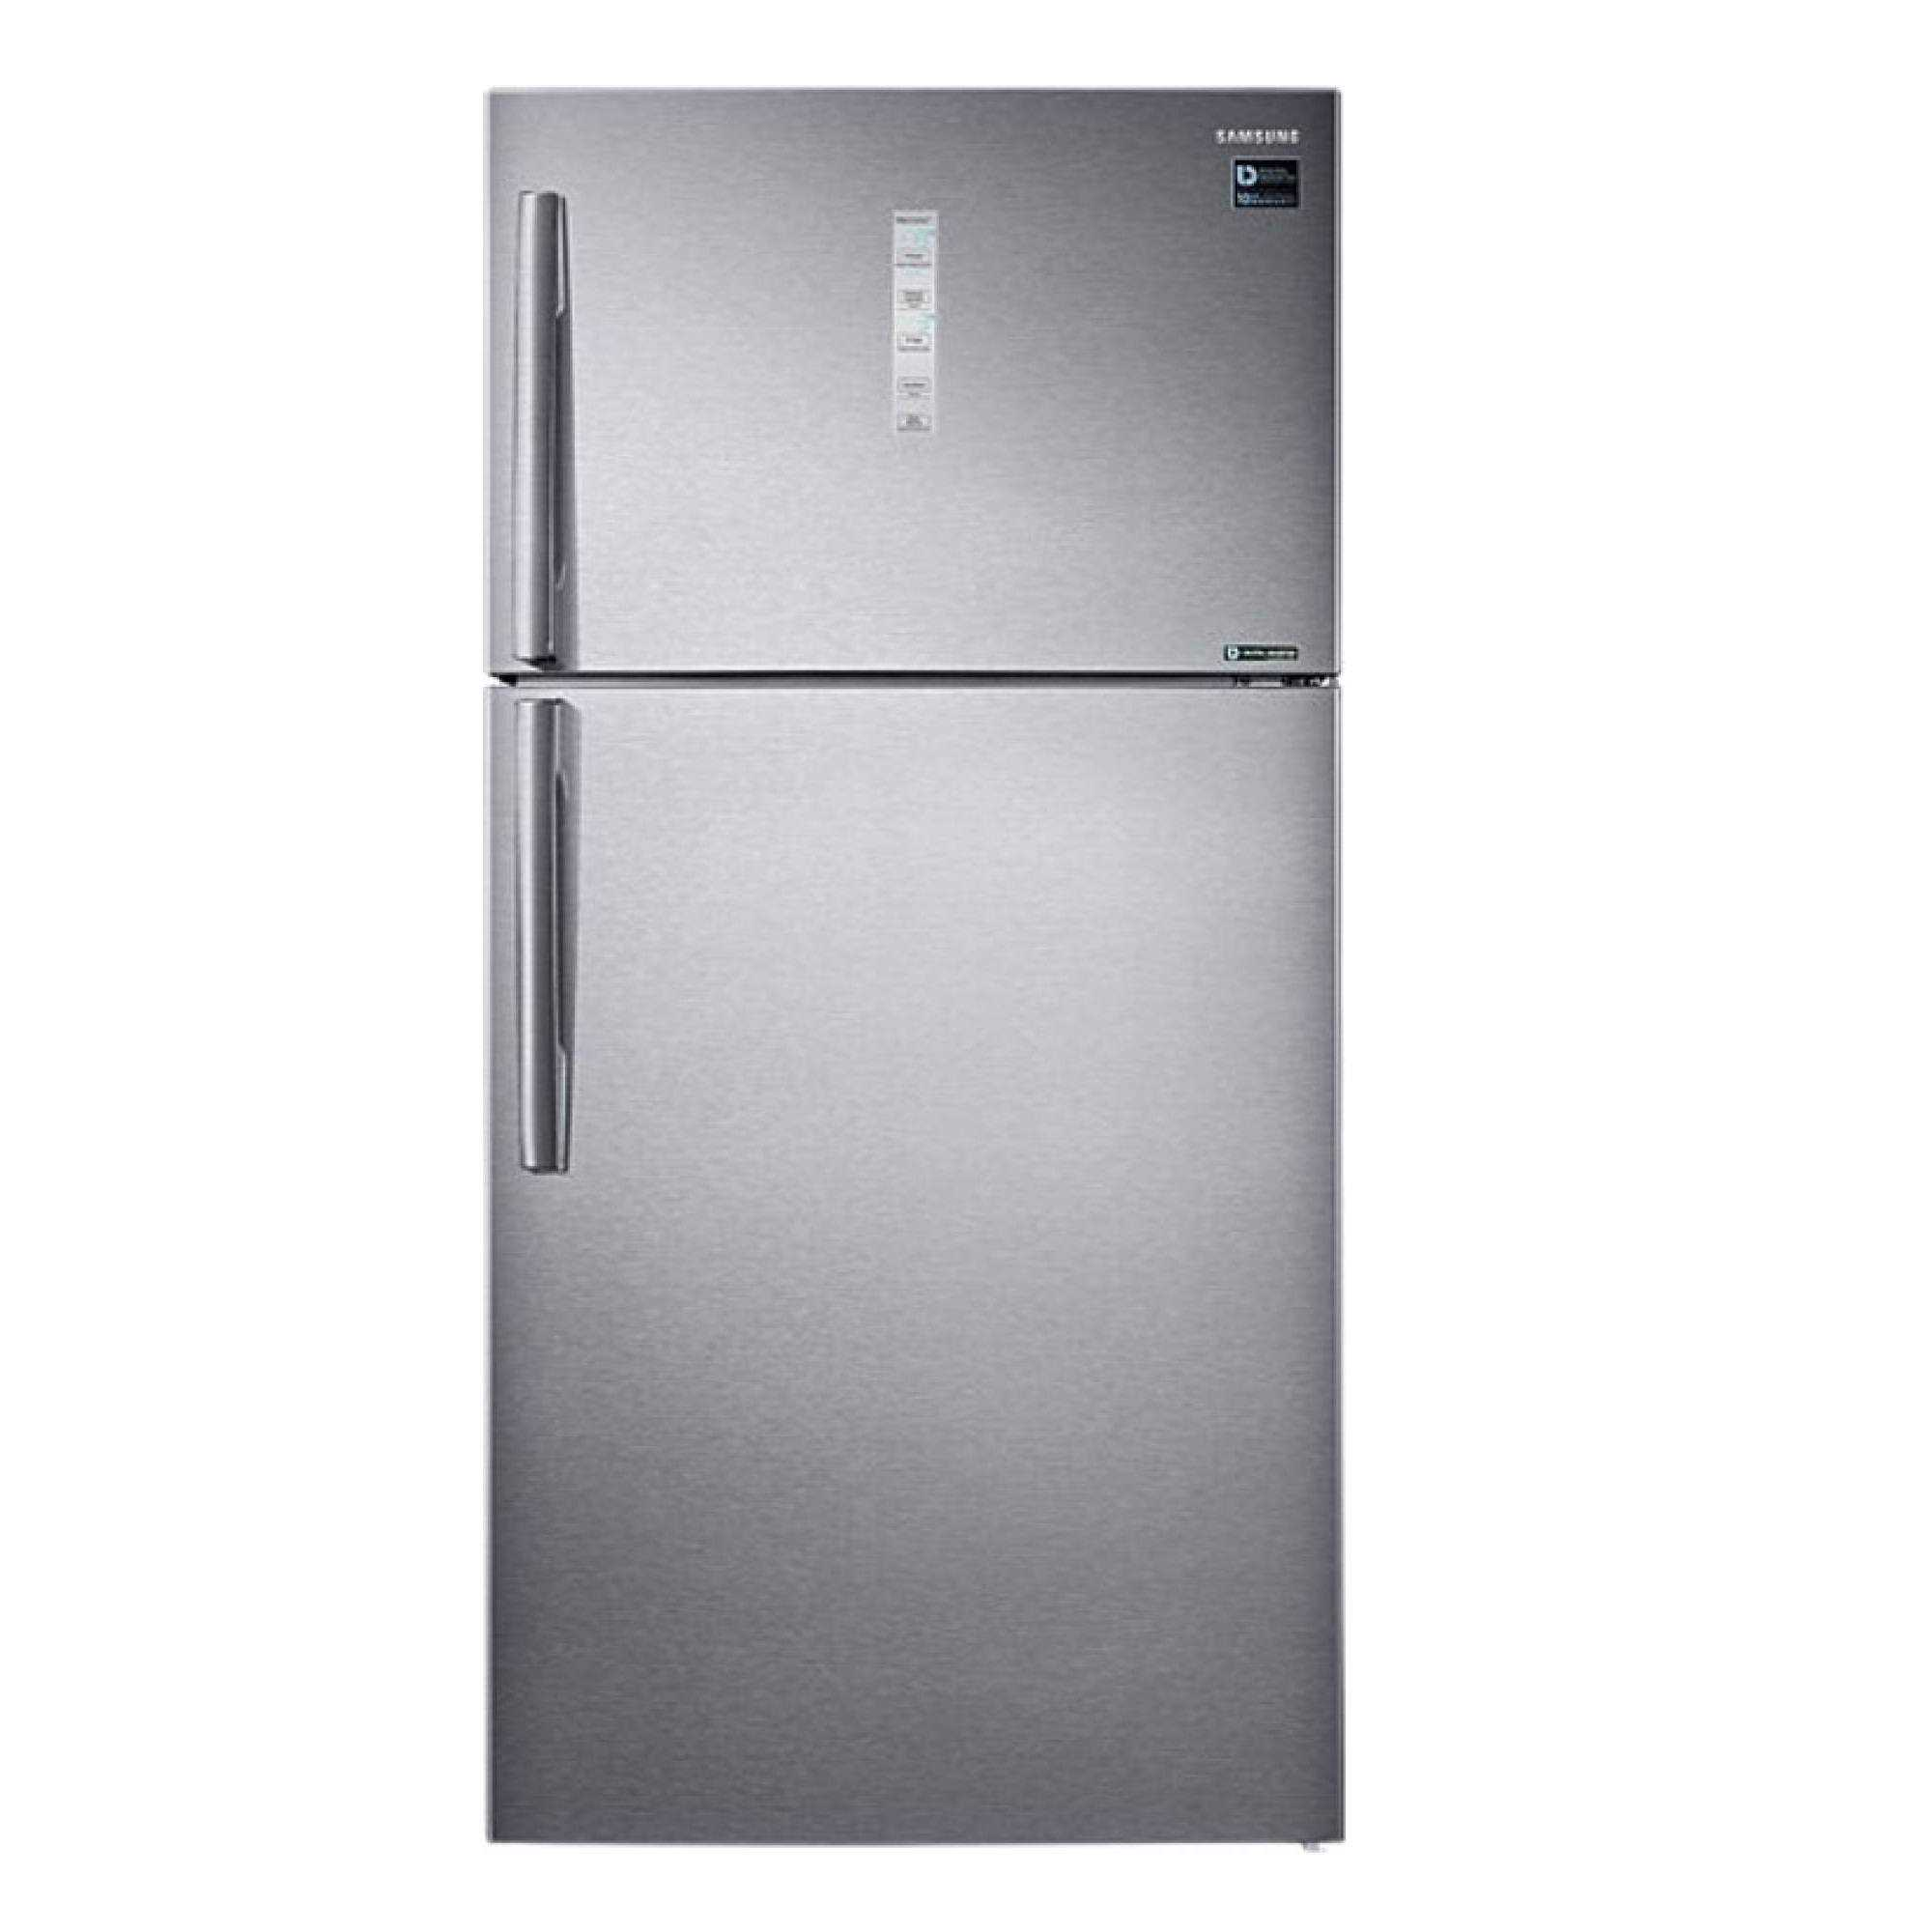 bosch price doors jun black and free reviews litres double specifications frost refrigerator large door